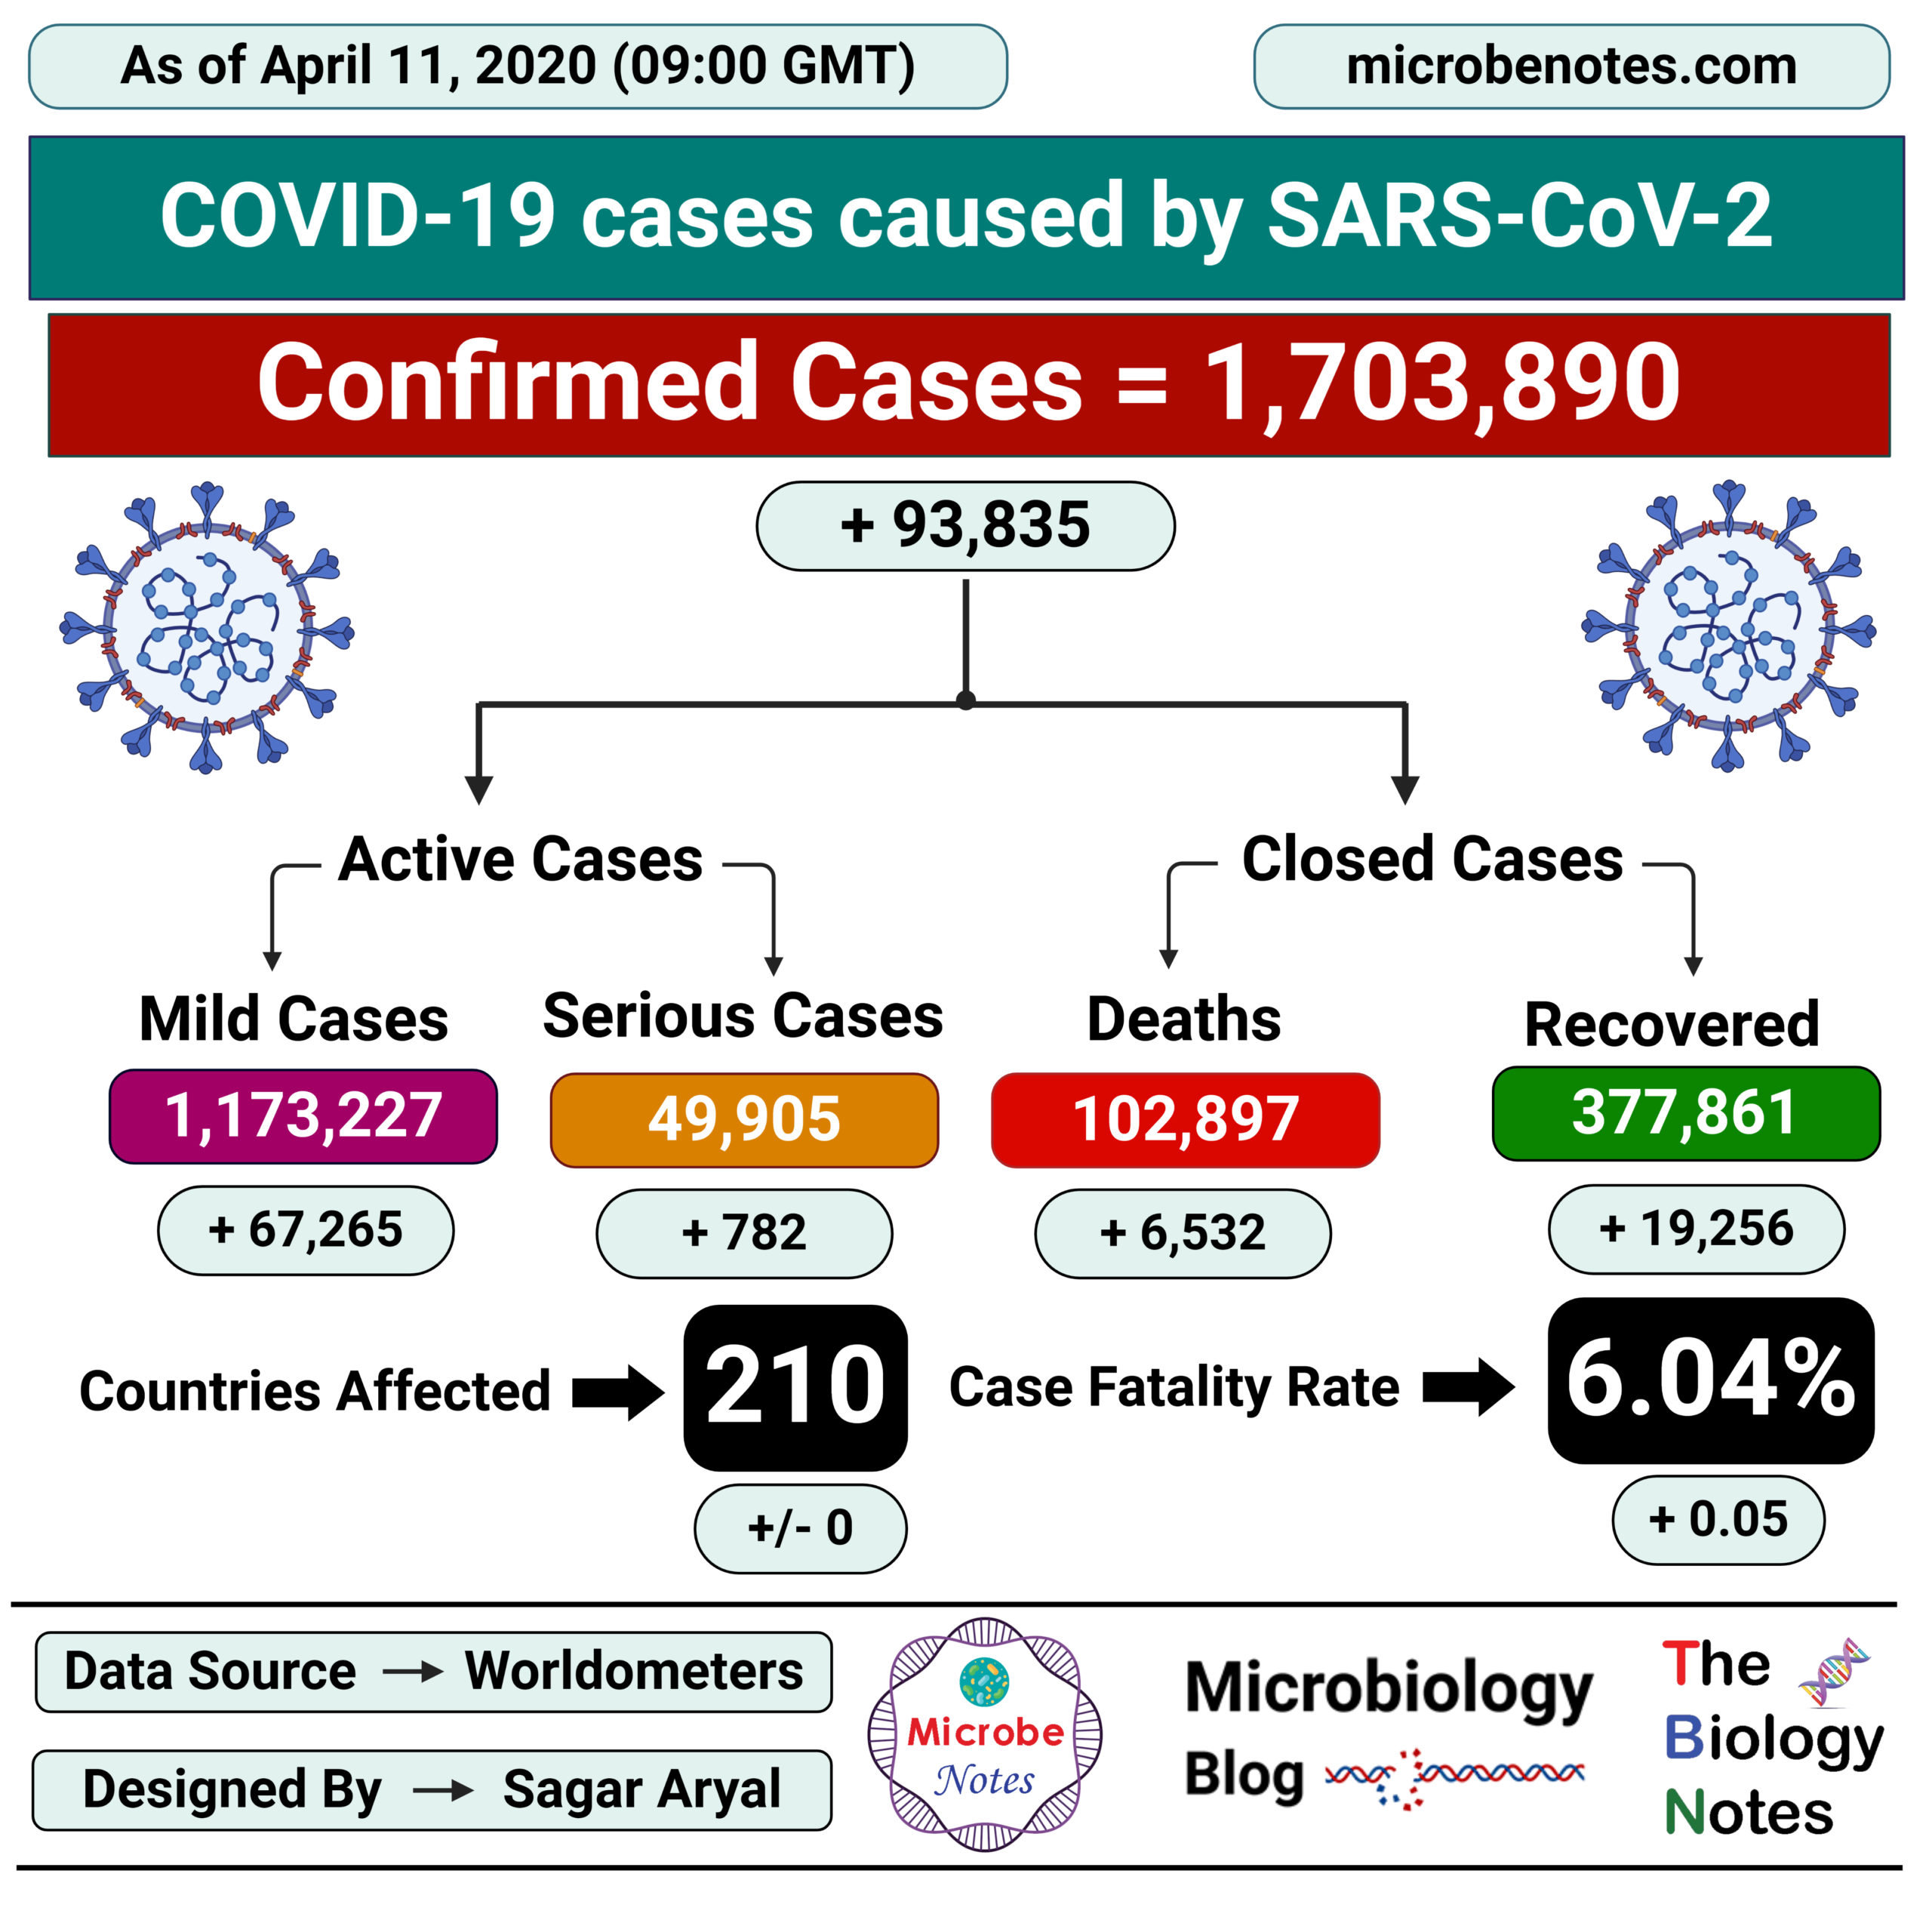 Epidemiology of COVID-19 caused by SARS-CoV-2 as of April 11, 2020